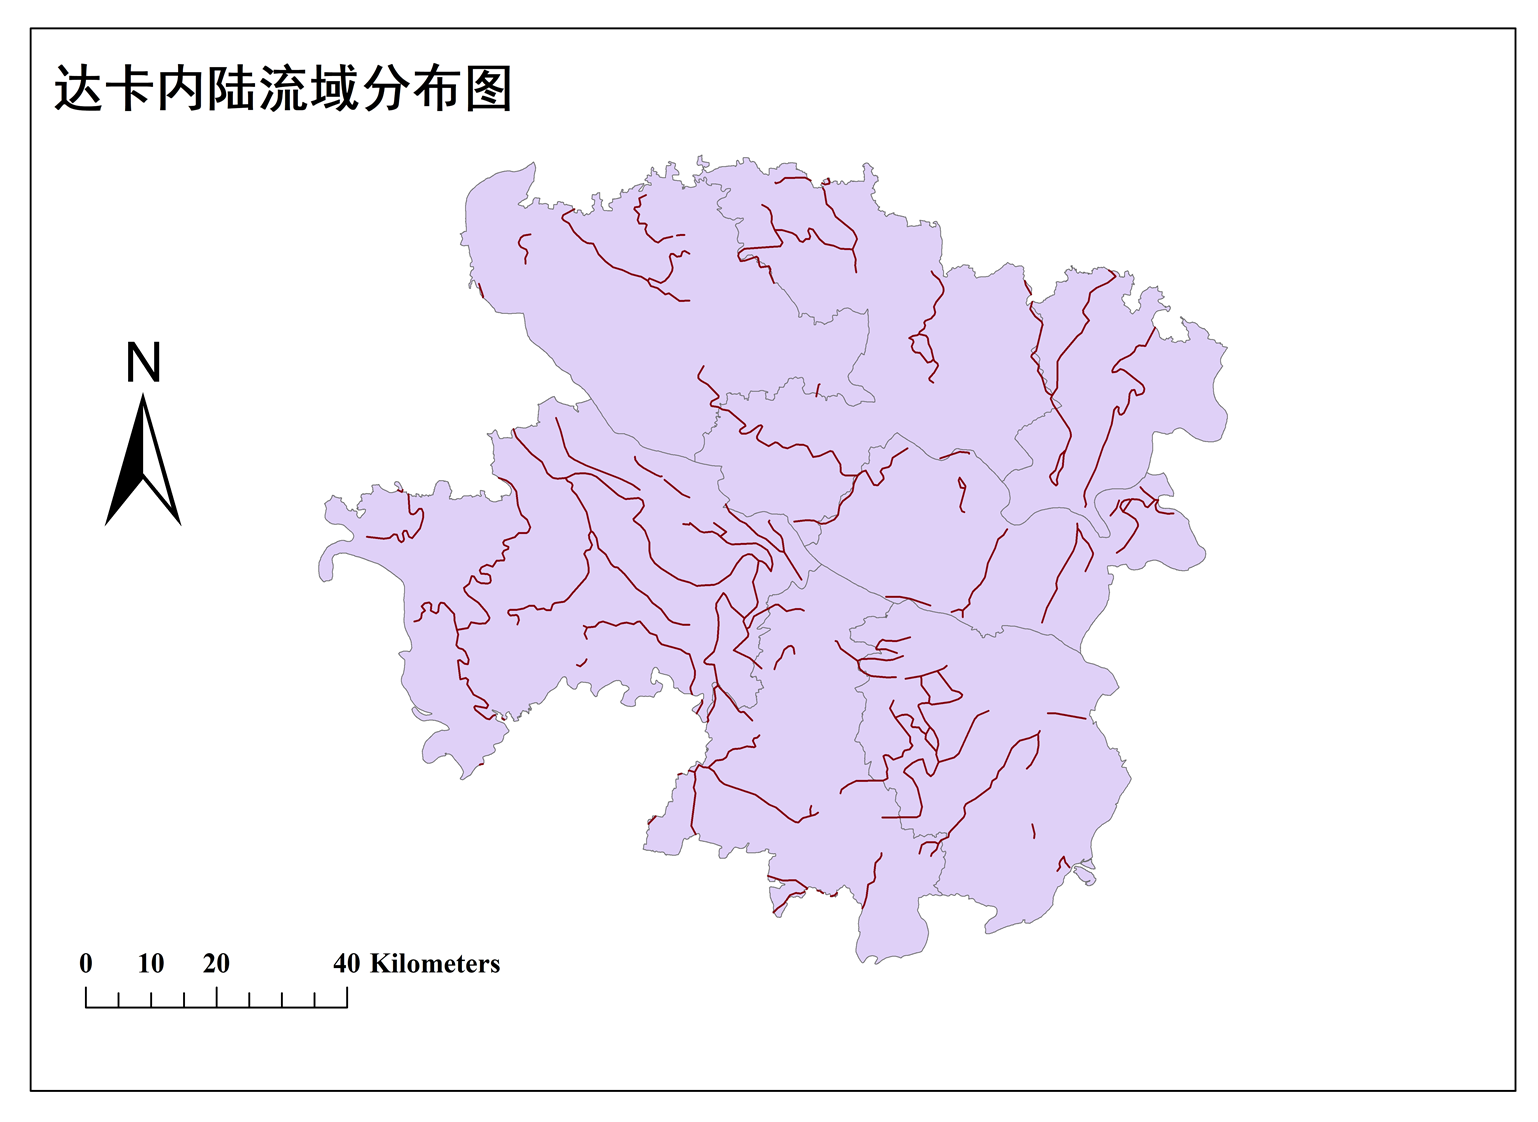 Regional water system and basin zoning data of 31 key nodes of Pan third pole (2018)